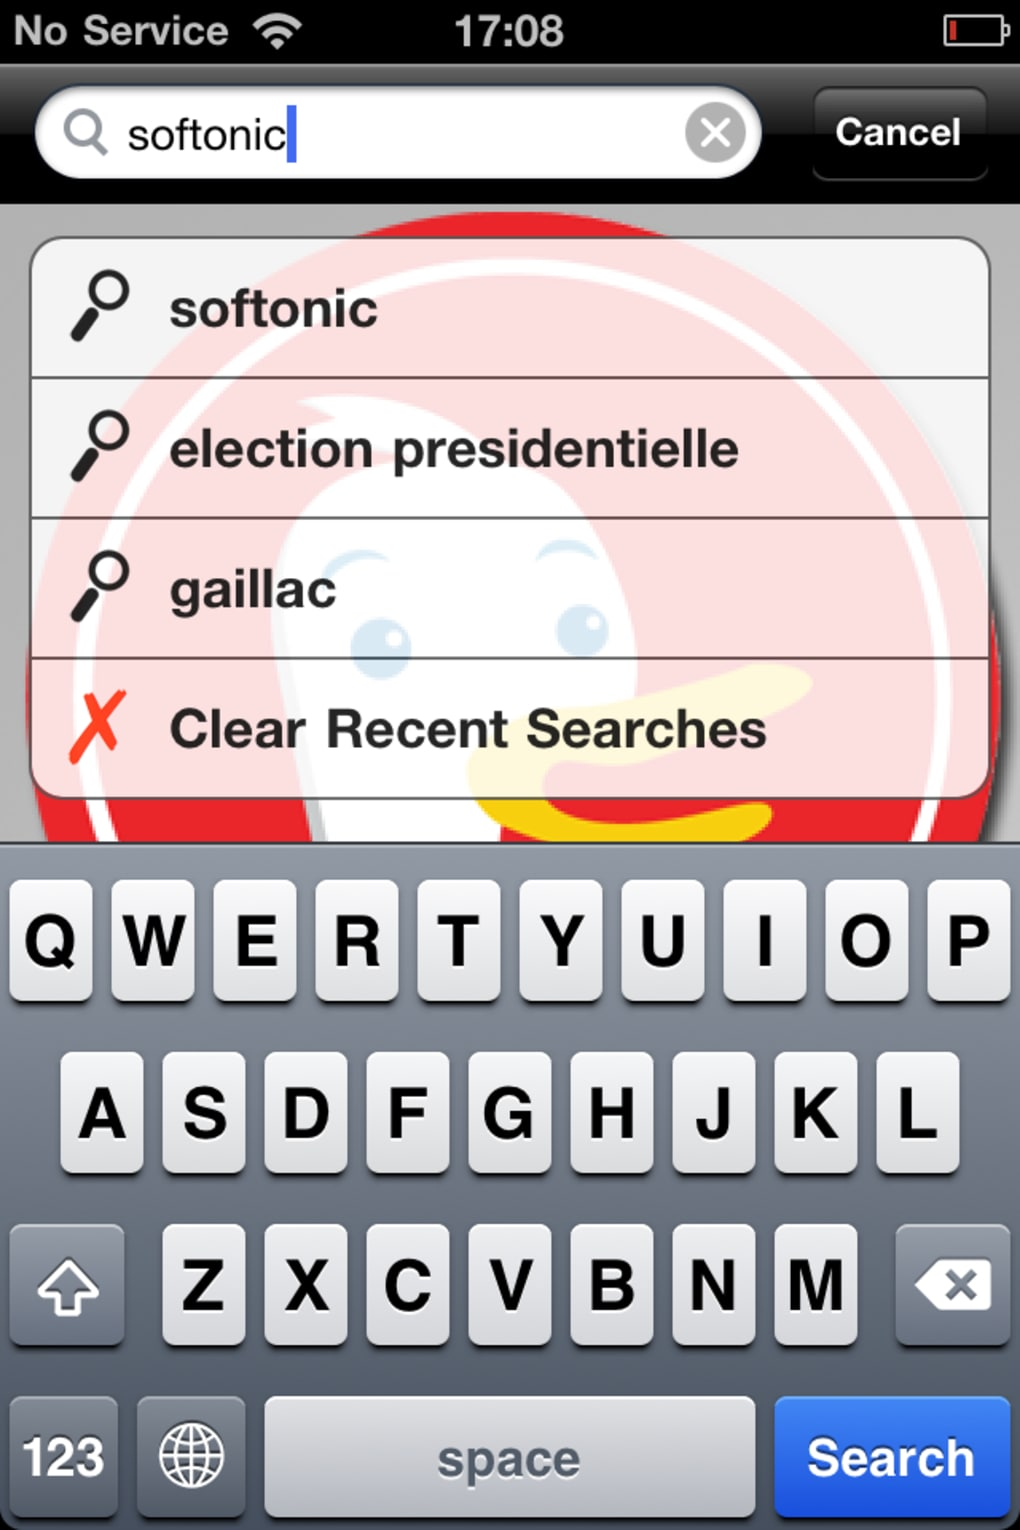 duckduckgo firefox Education &Reference iphone